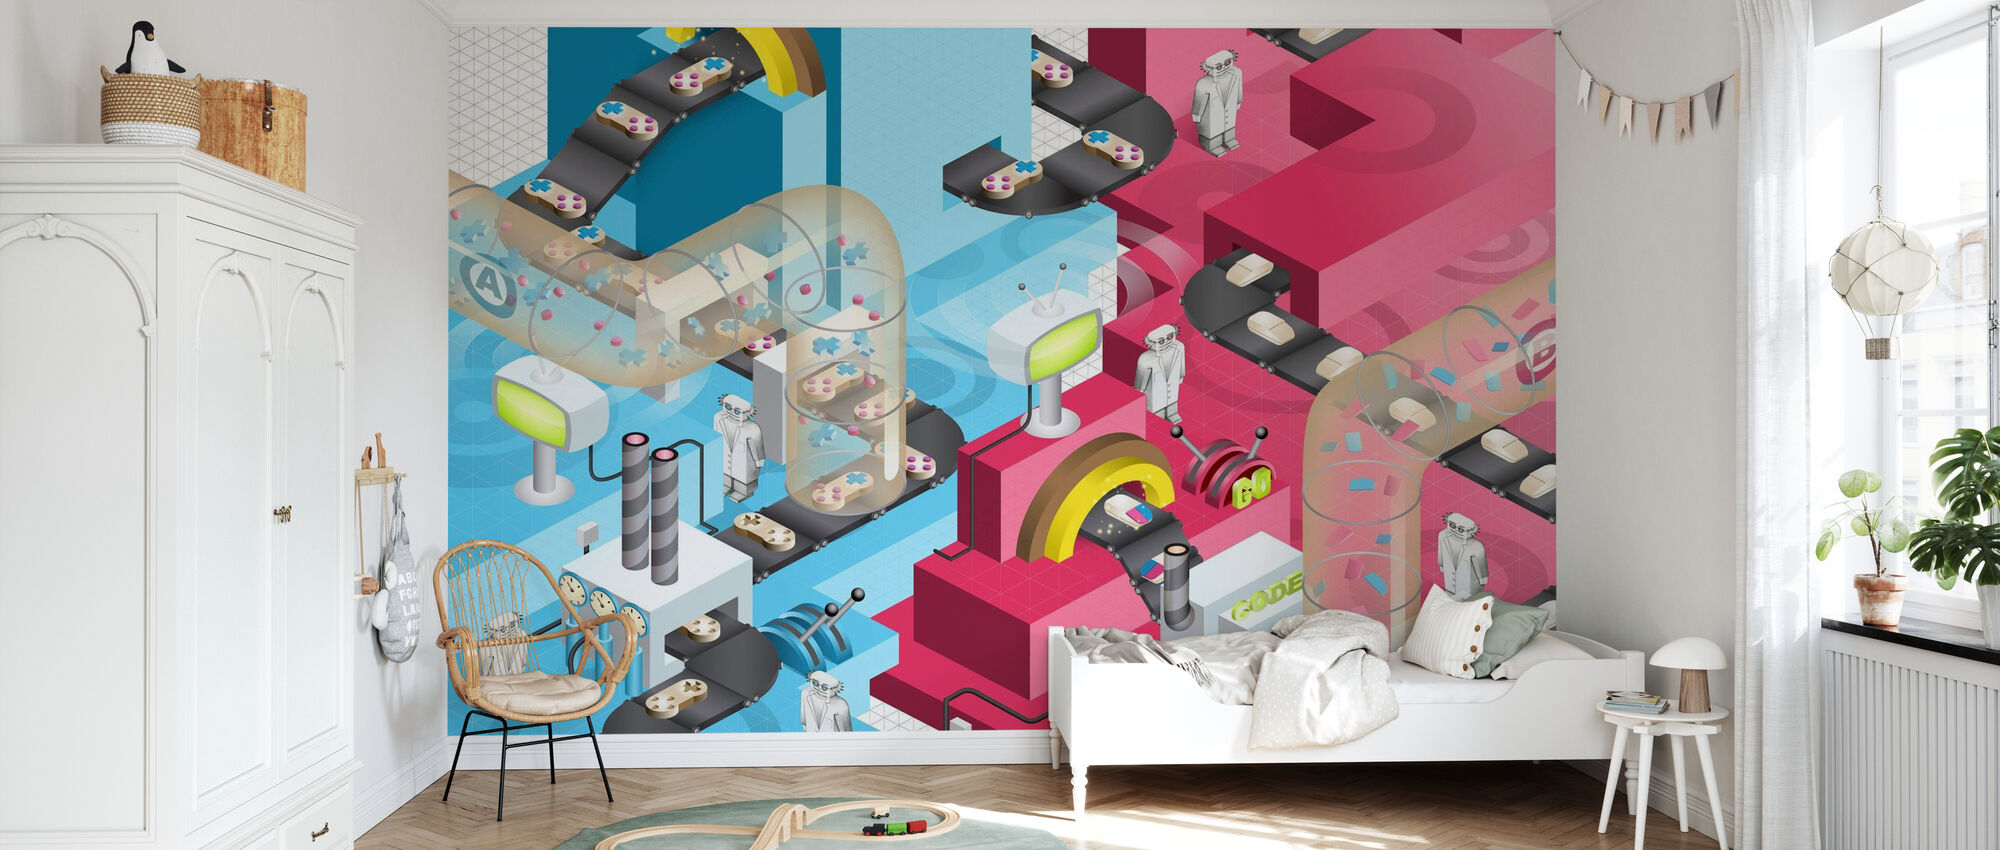 Competetive Gaming - Wallpaper - Kids Room